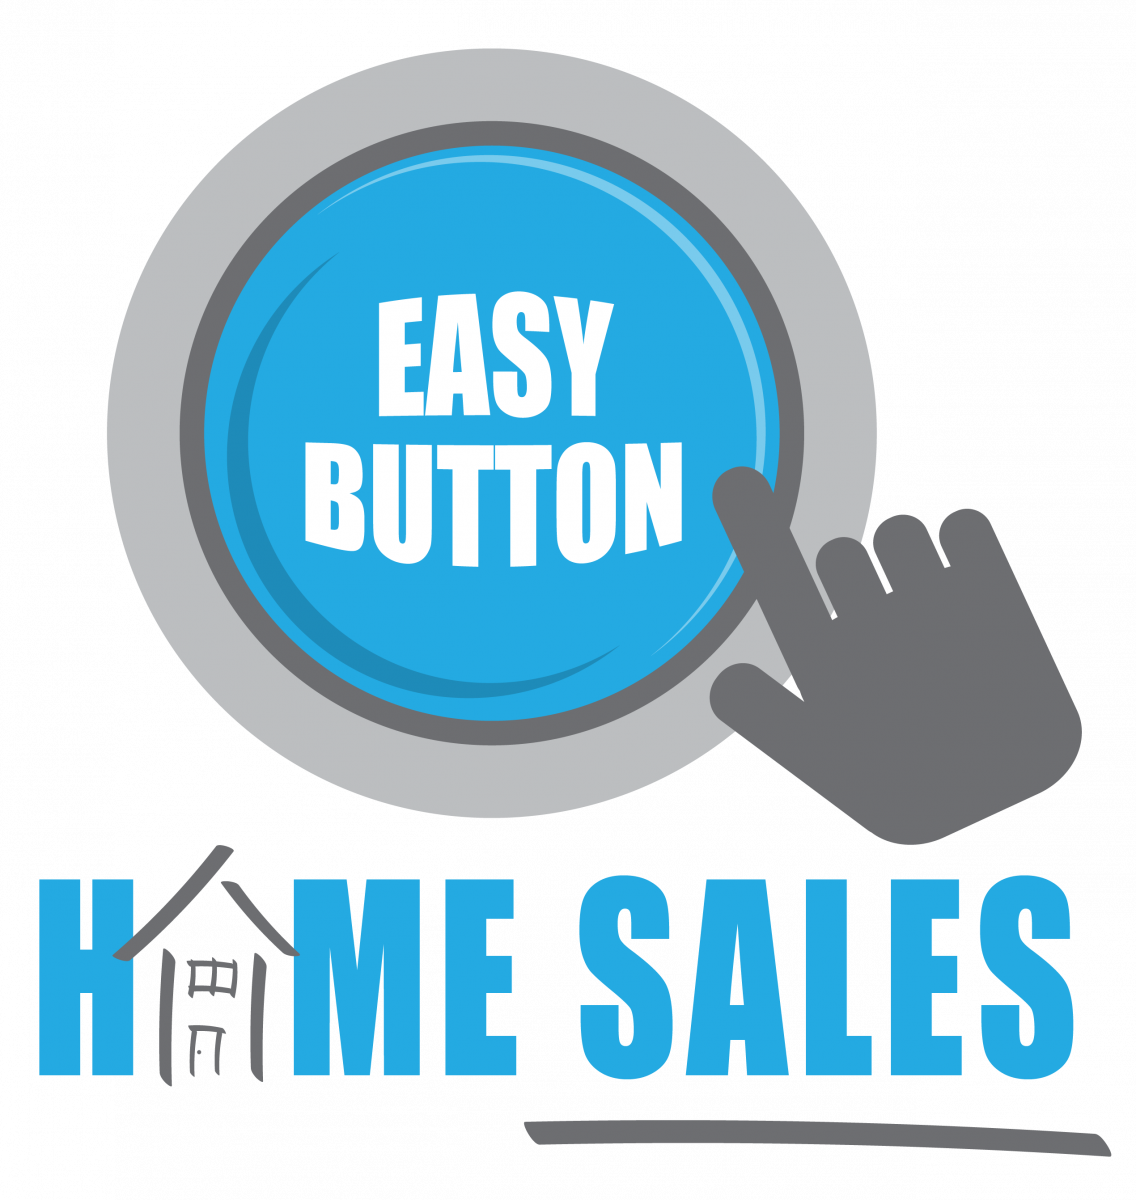 Easy Button Home Sales logo